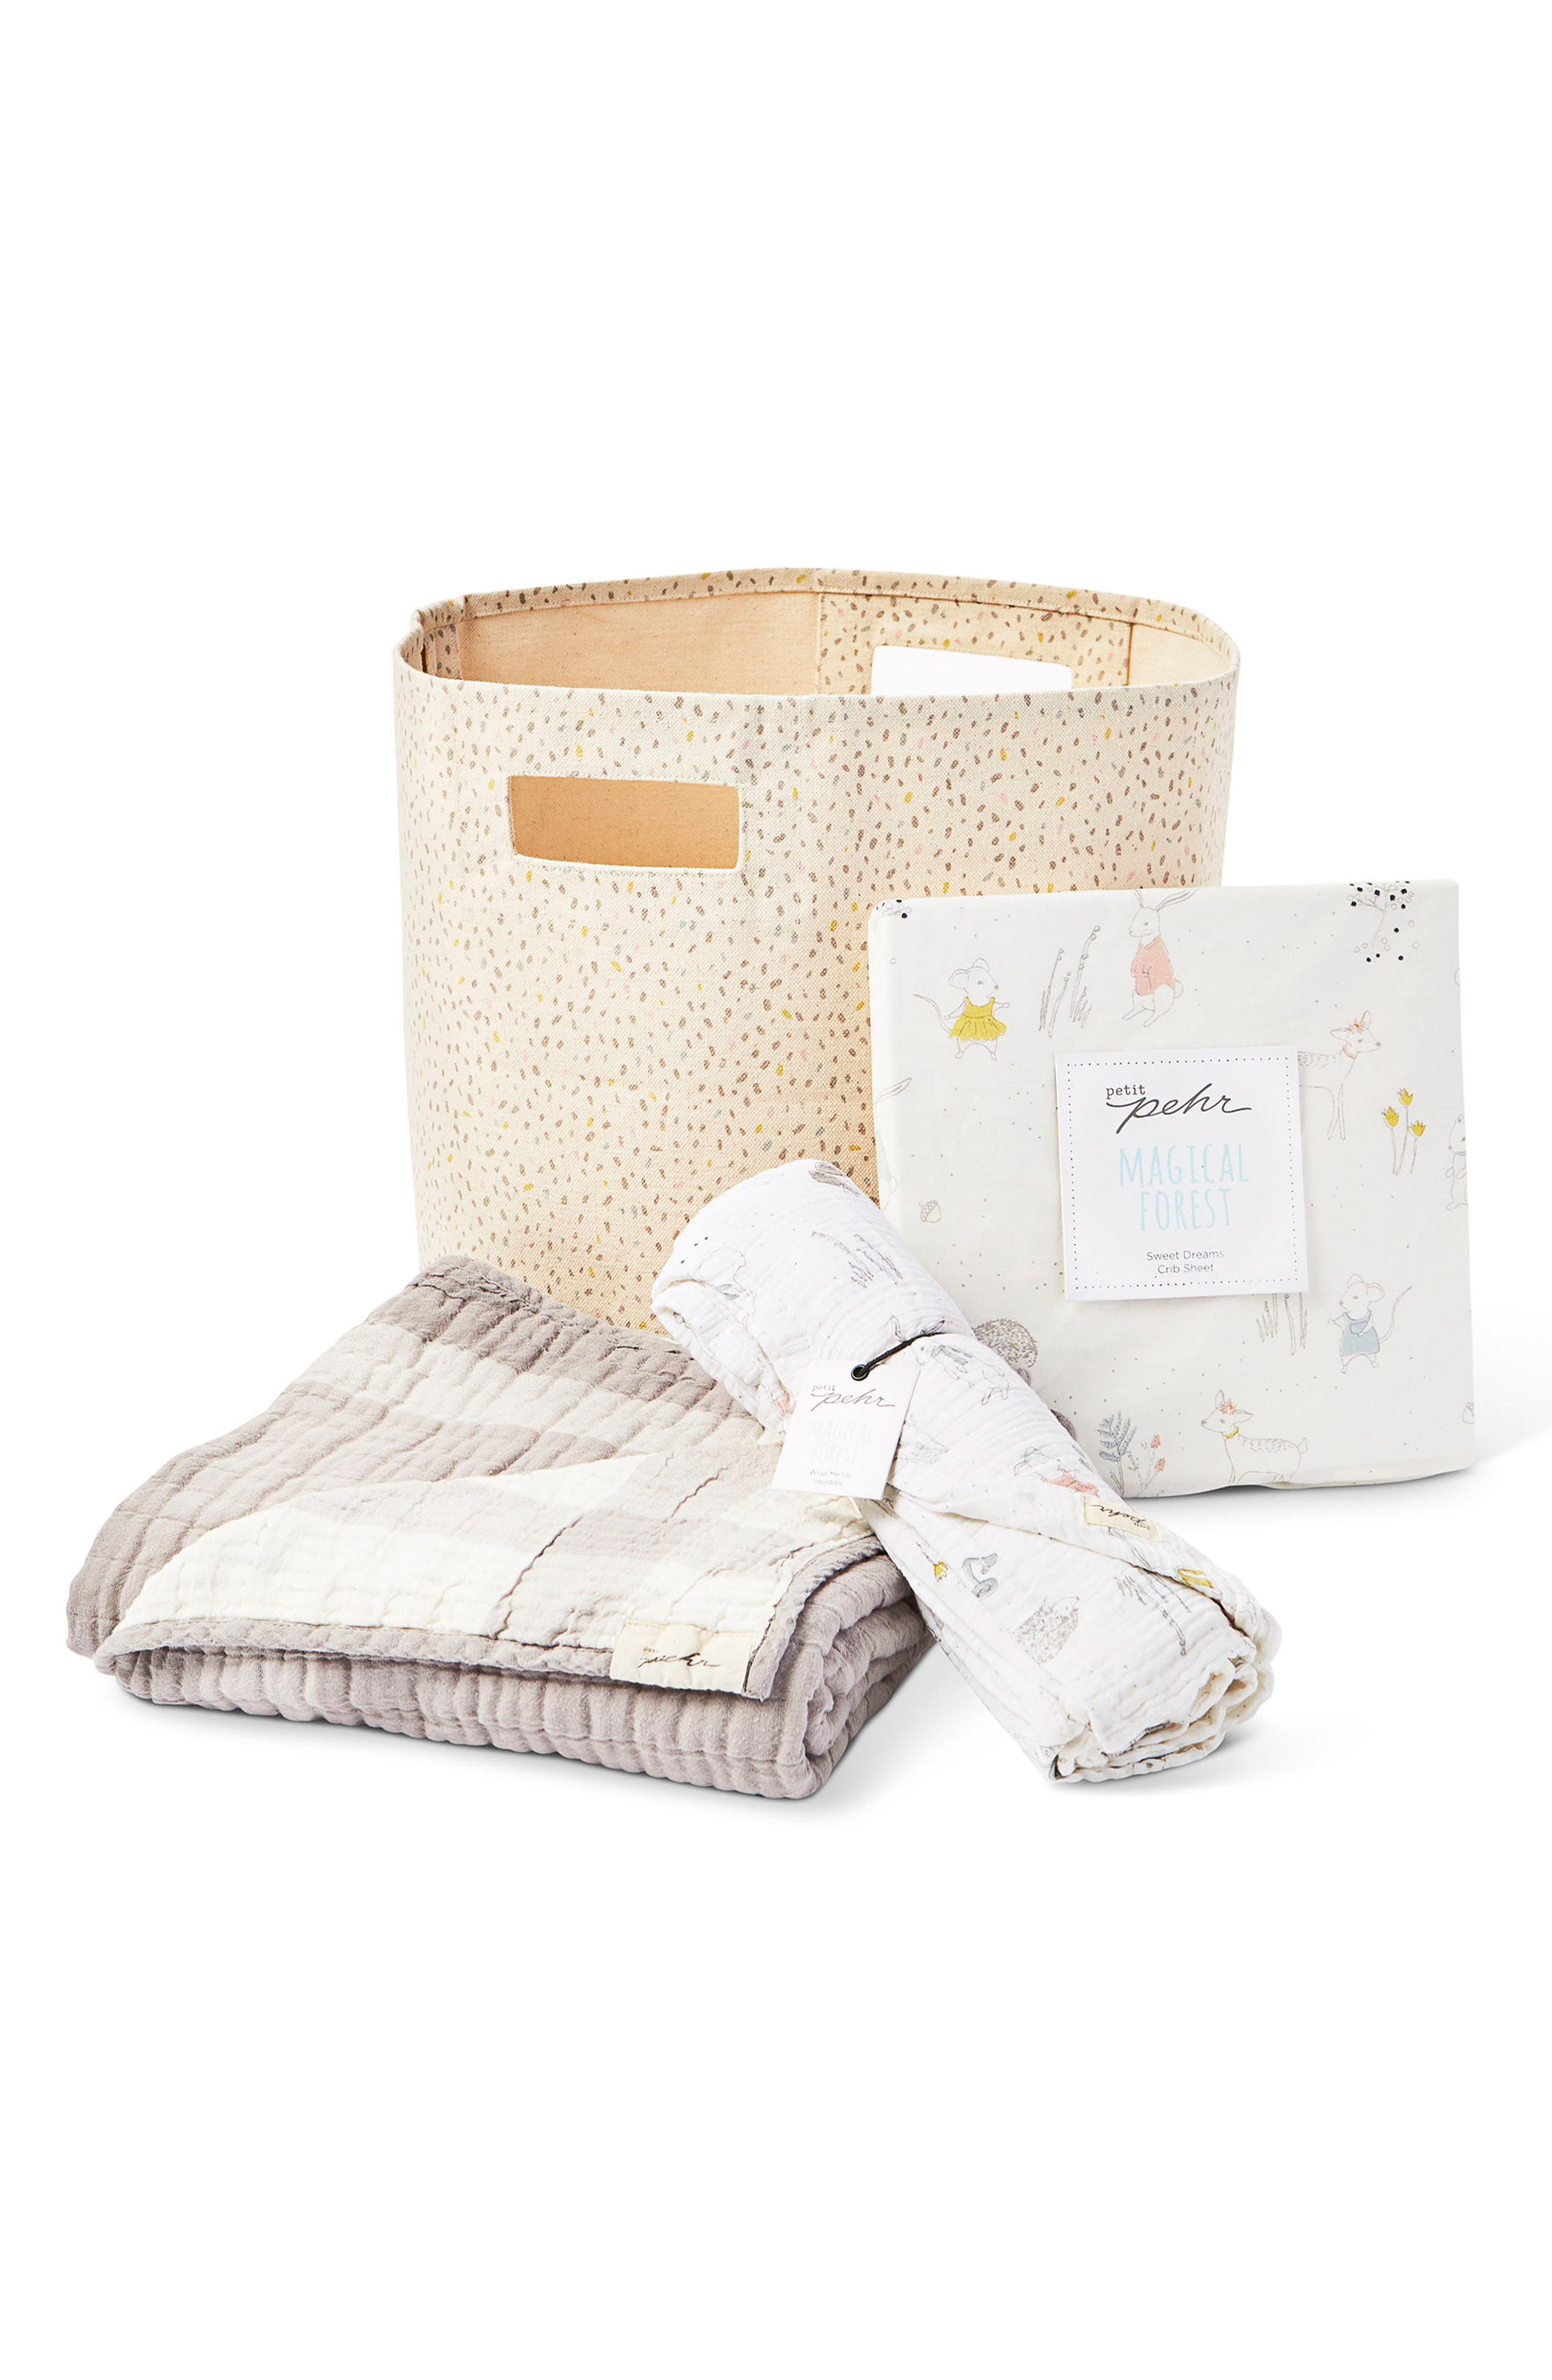 Pehr Magical Forest Blanket Crib Sheet Swaddle  Bin Set Size One Size  Ivory